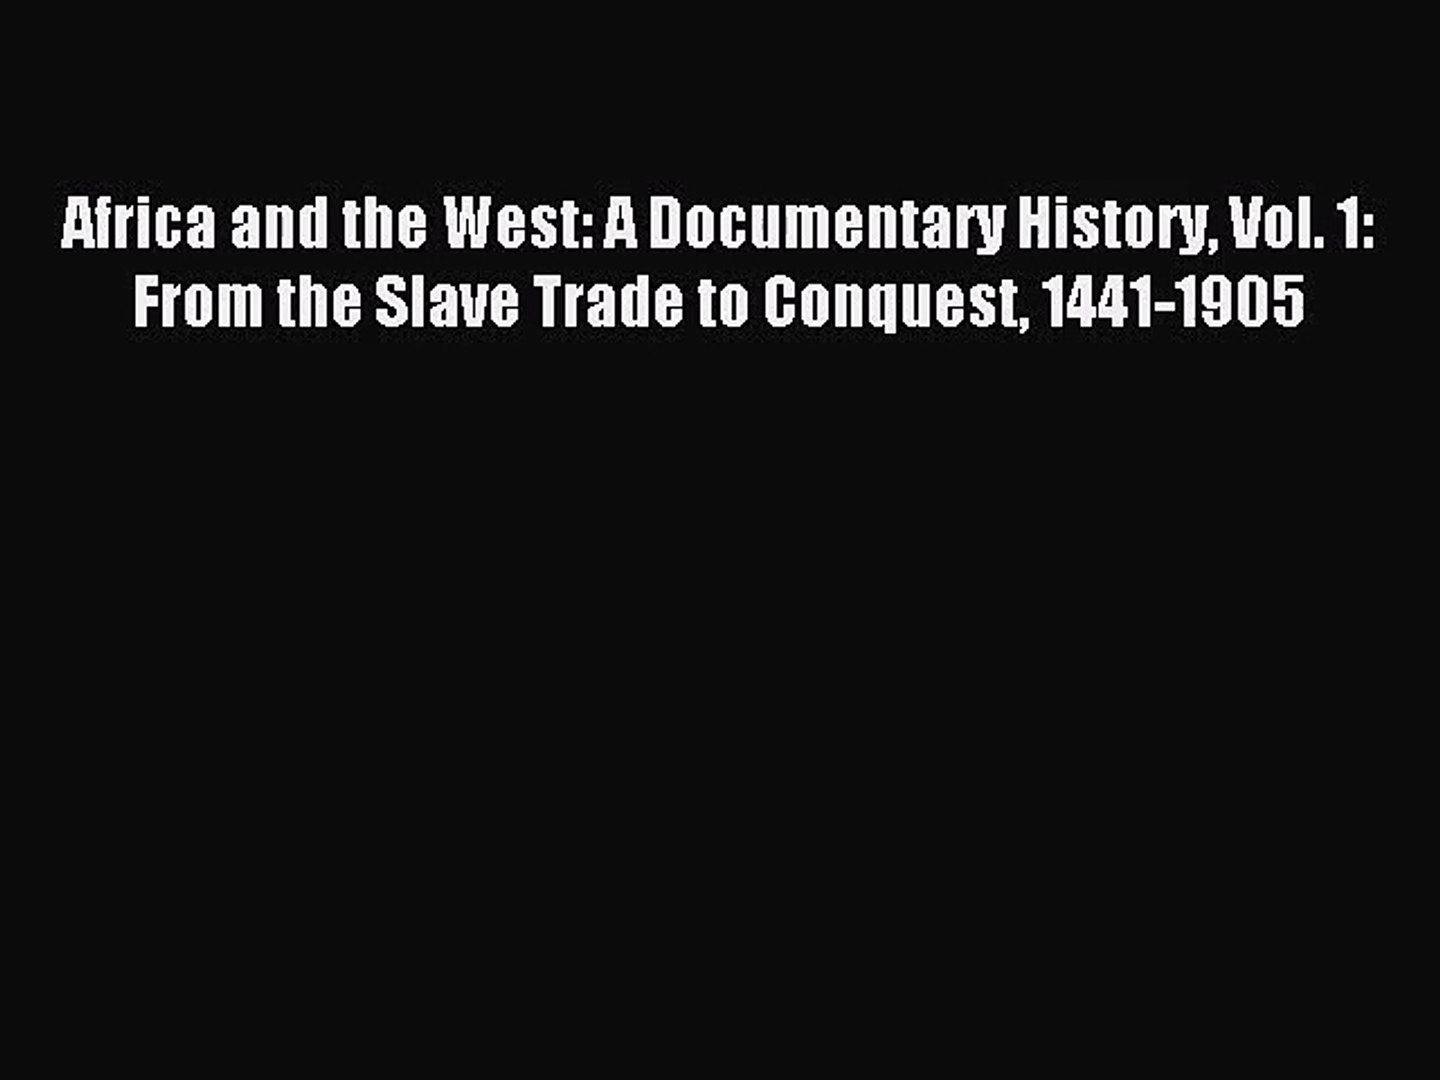 (PDF Download) Africa and the West: A Documentary History Vol. 1: From the Slave Trade to Conquest